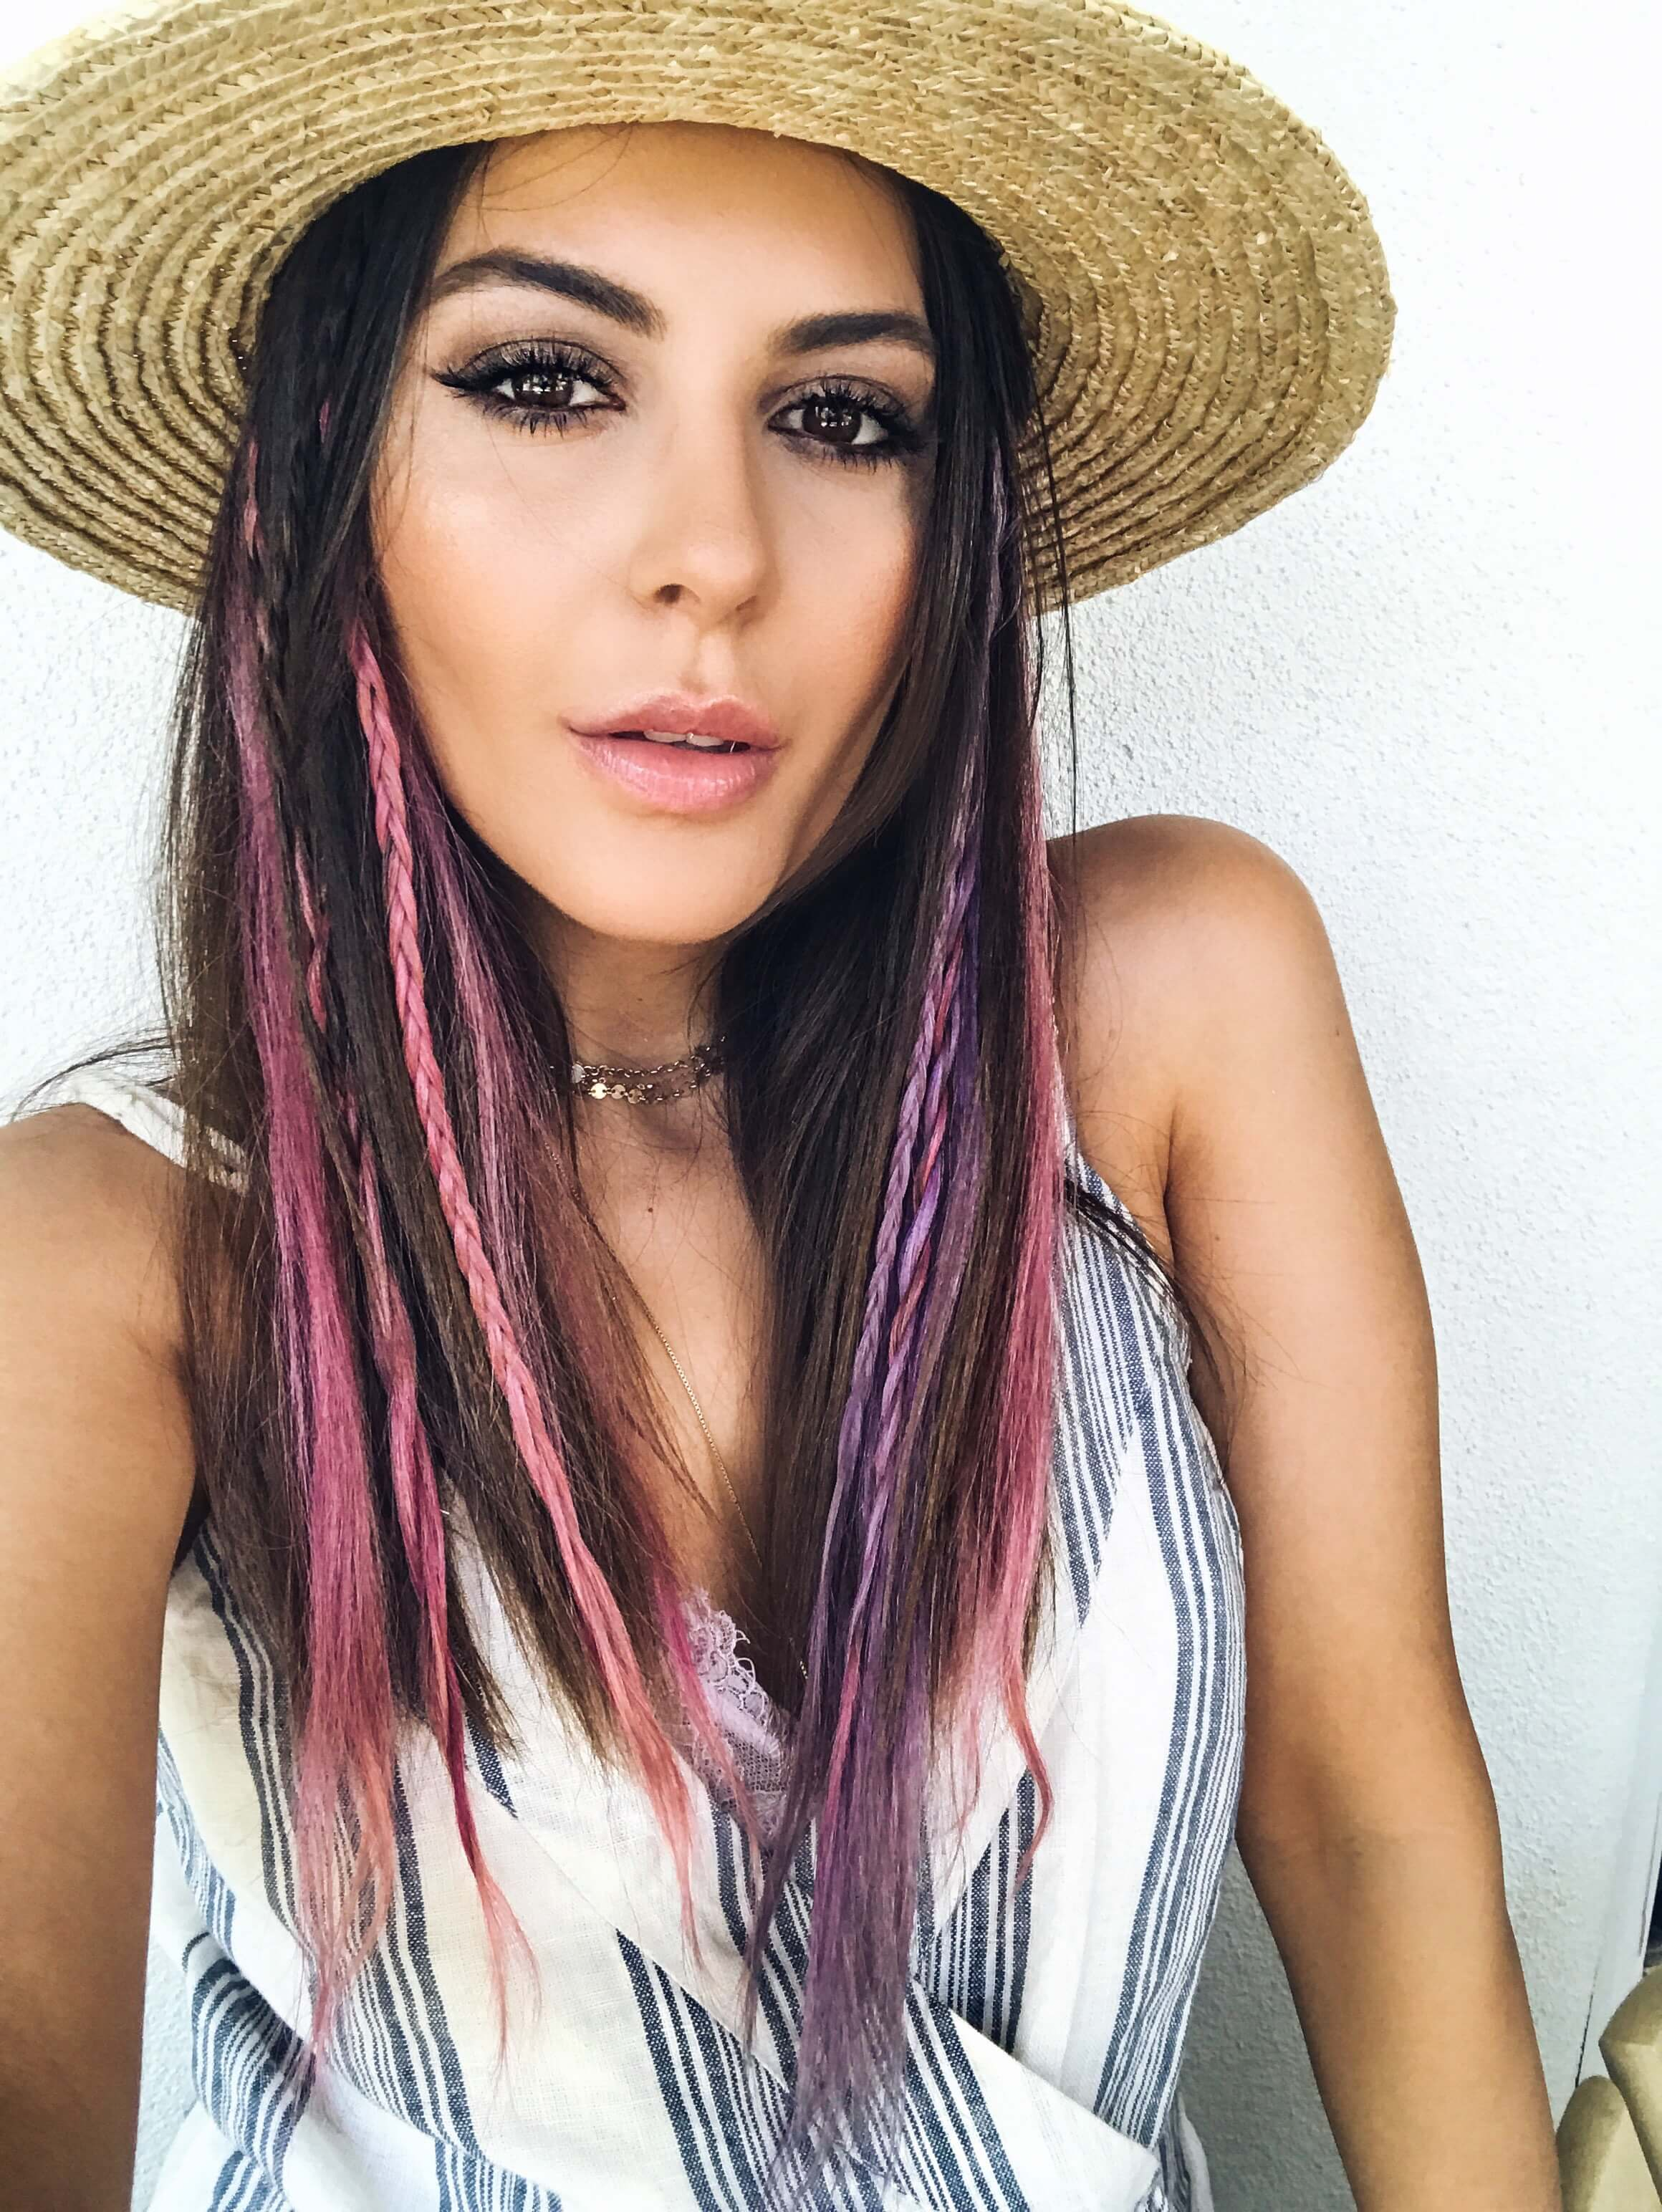 sona gasparian wears festival style pastel clip in extensions